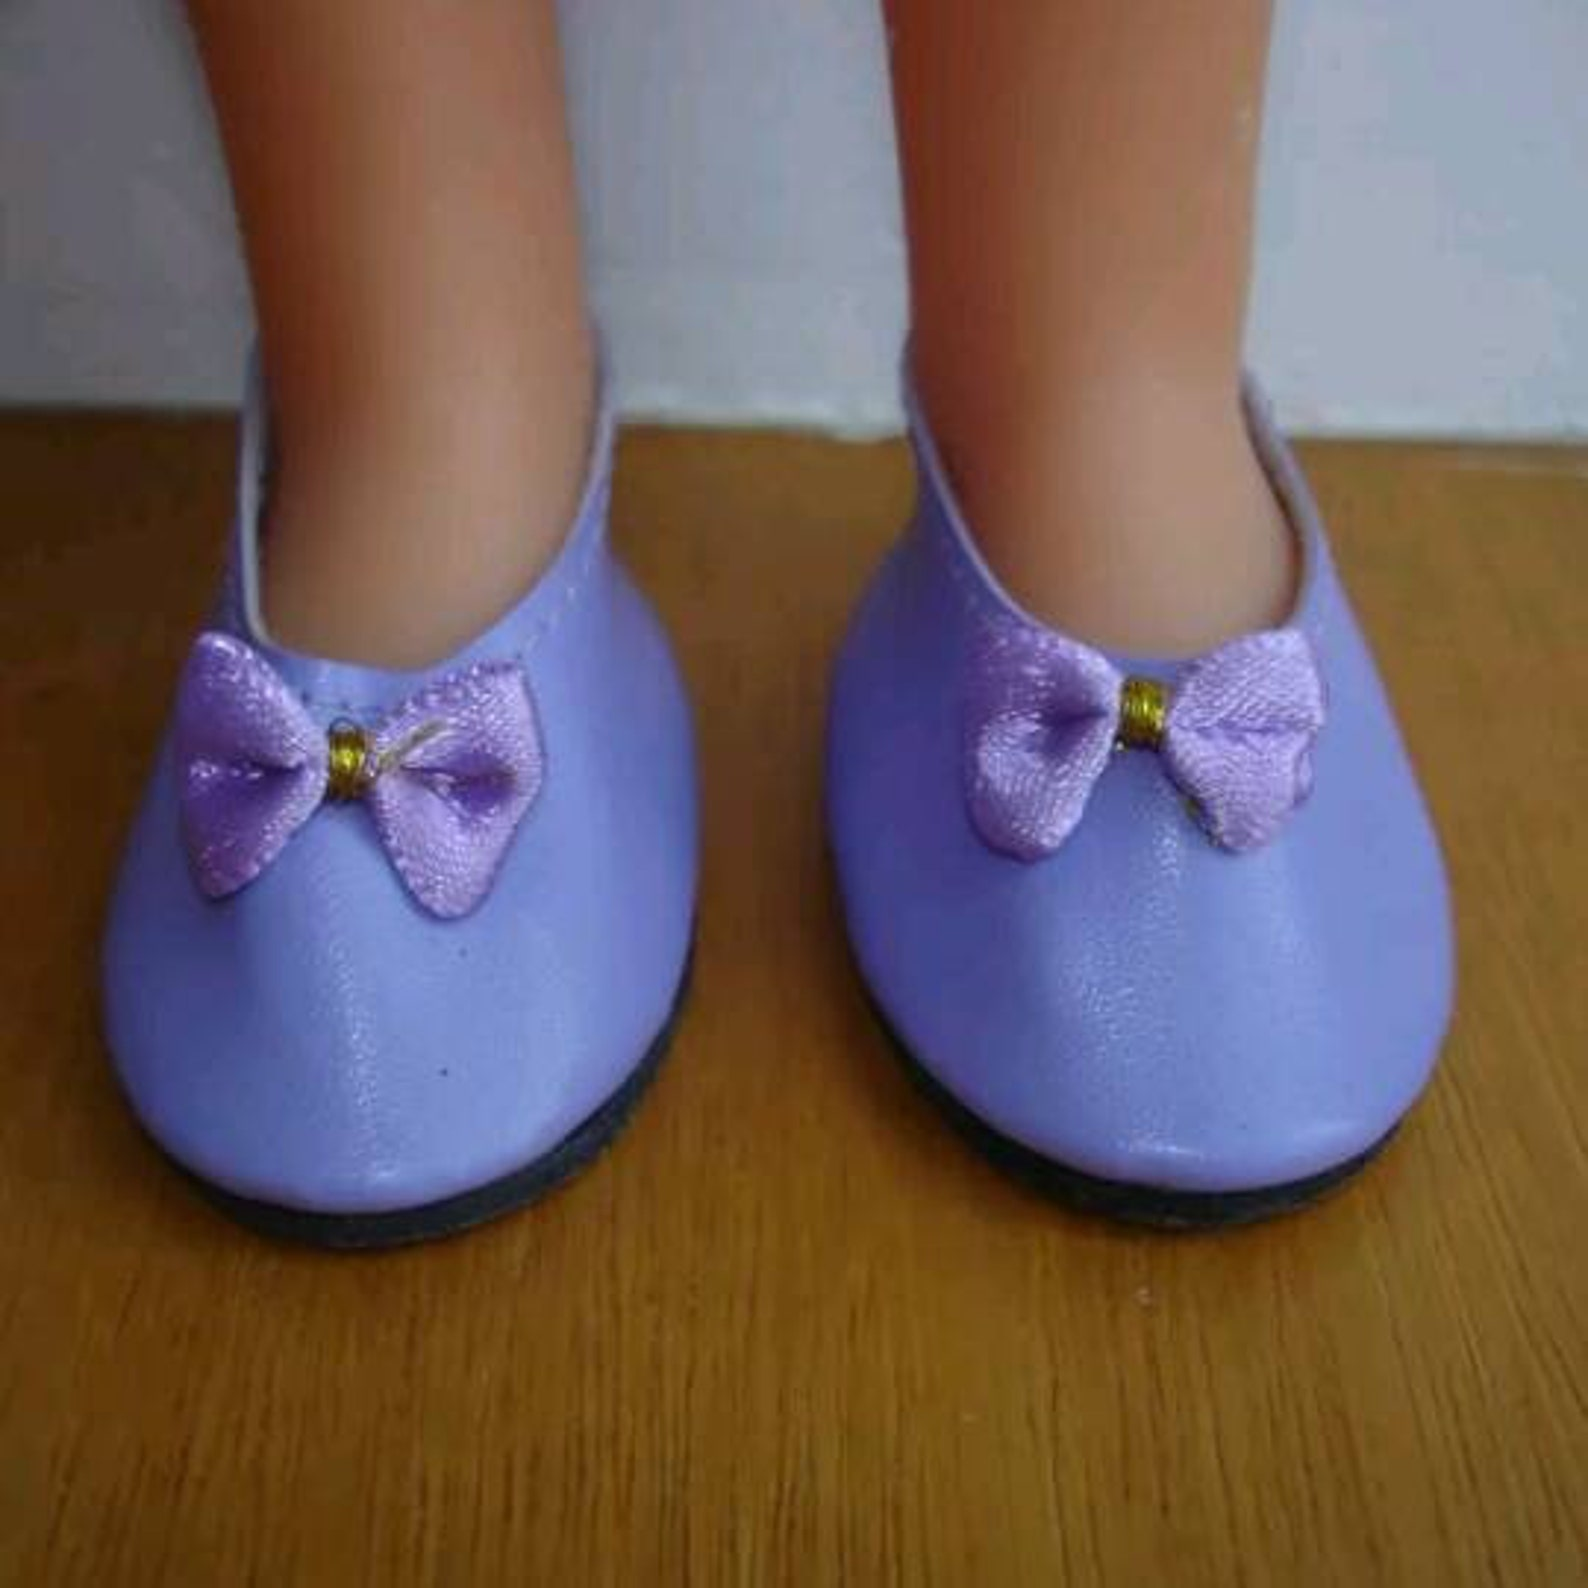 ballet flats shoes purple bow for doll paola reina bella cathie amigas corolla sweethearts